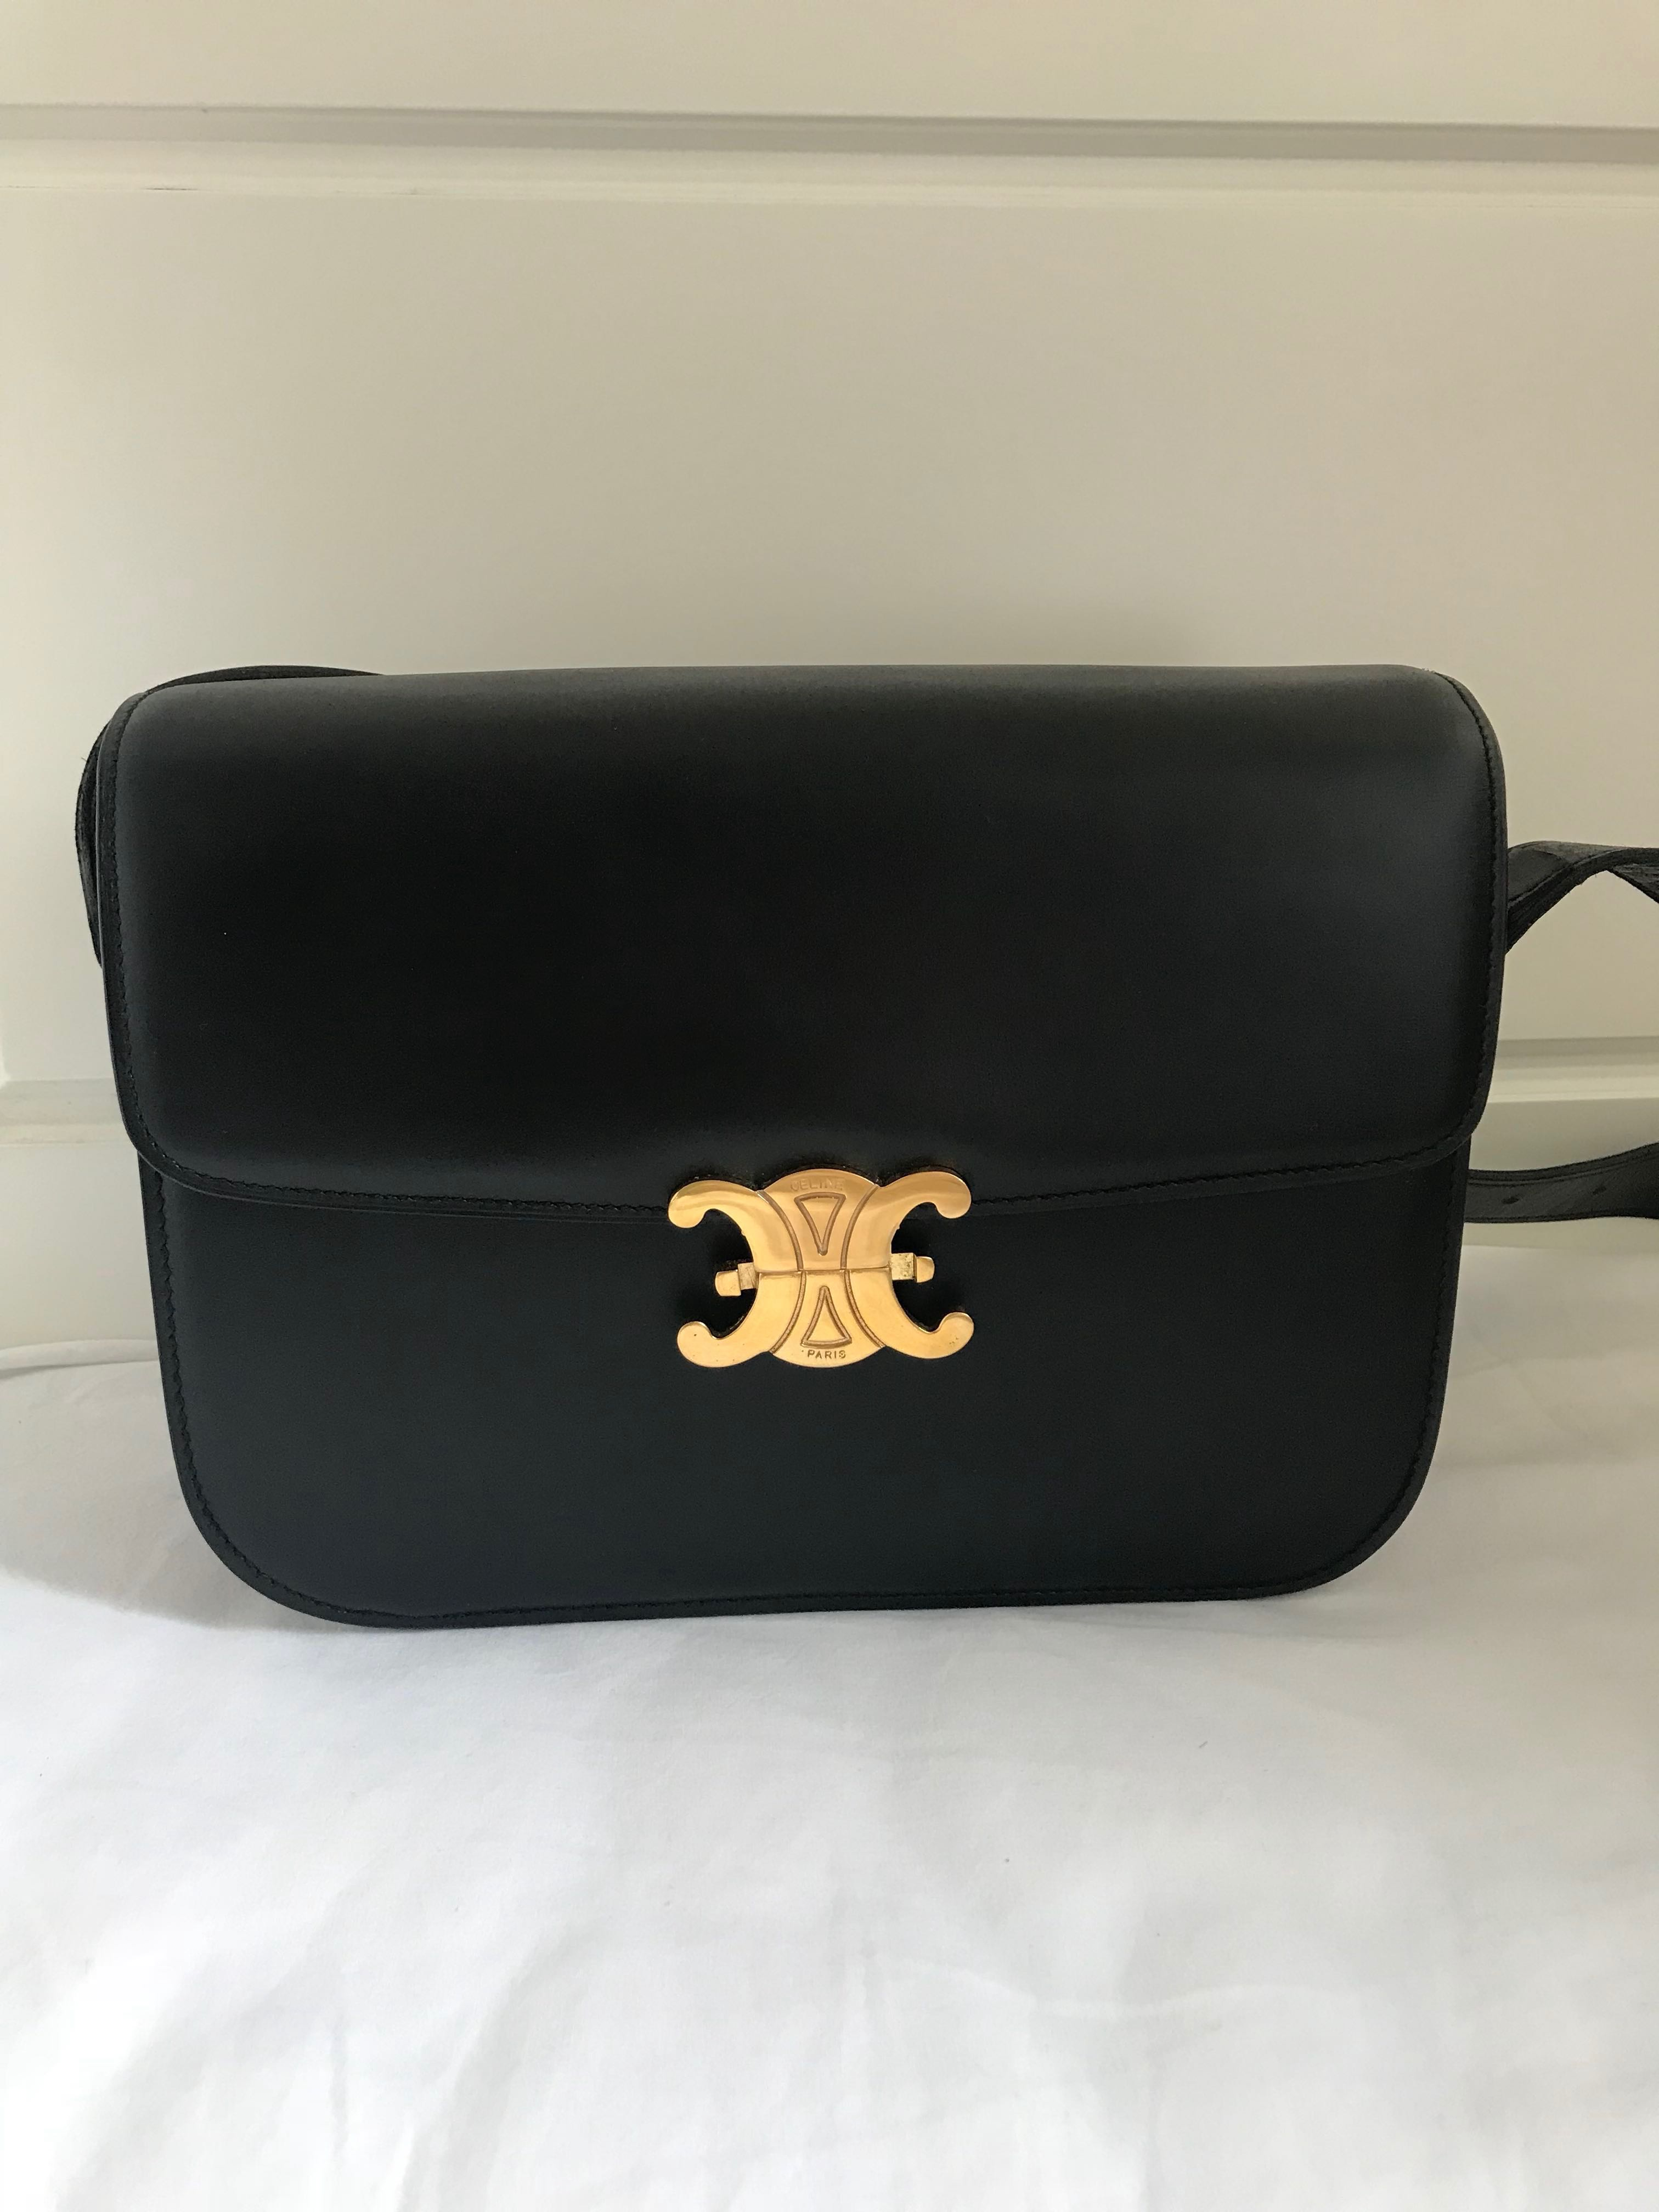 New Wave Auto >> Rare Celine Vintage TRIOMPHE box bag 凱旋門扣, Luxury, Bags & Wallets on Carousell